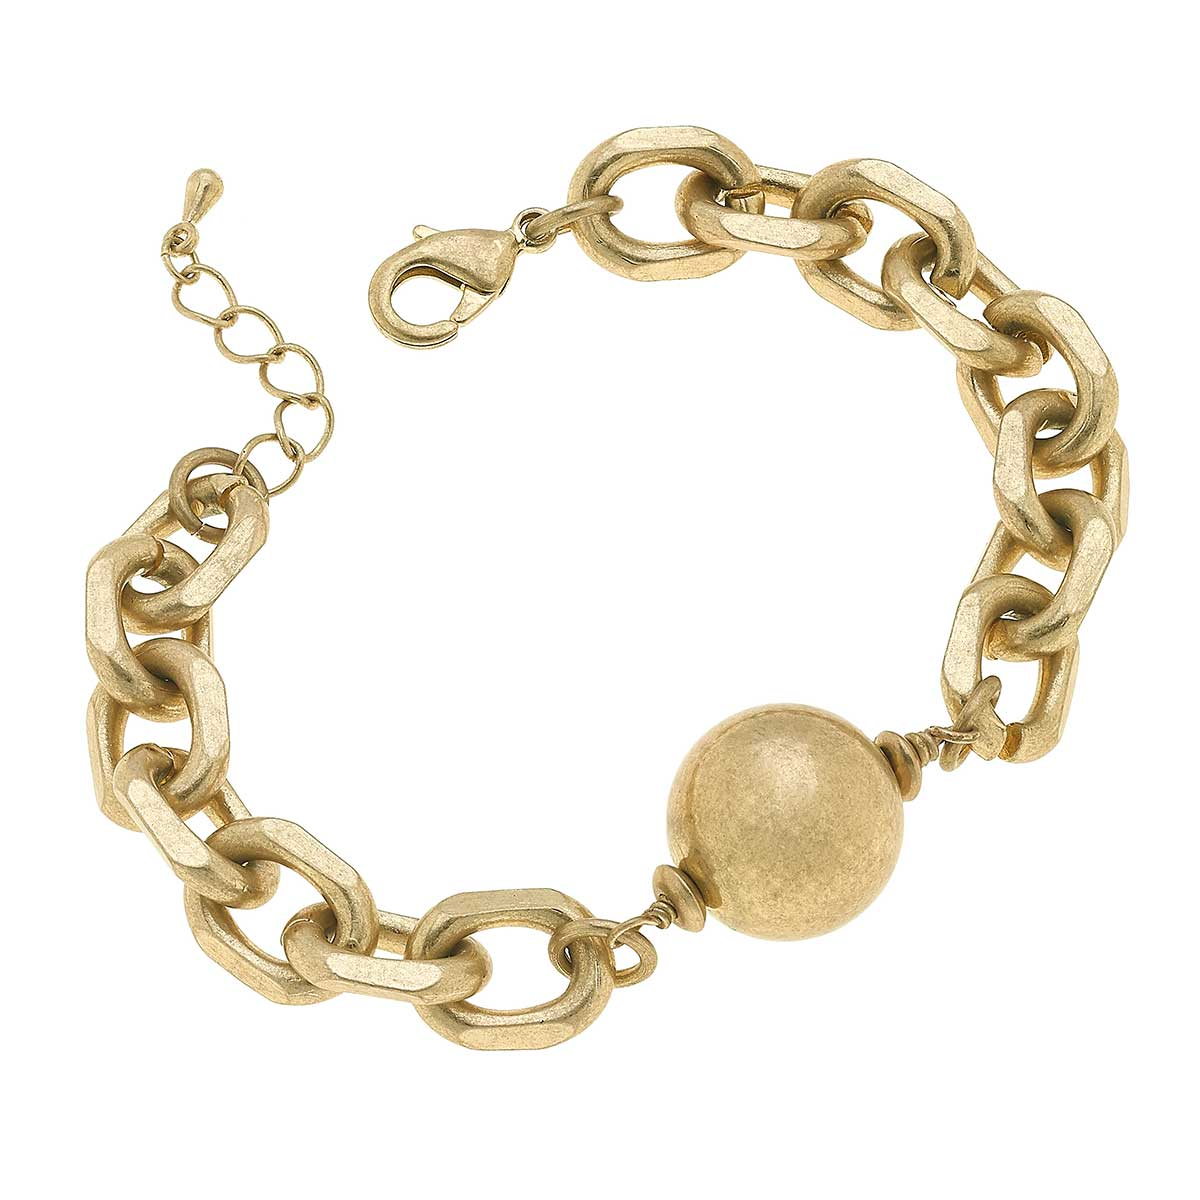 Carli Ball Bead Chunky Chain Bracelet in Worn Gold